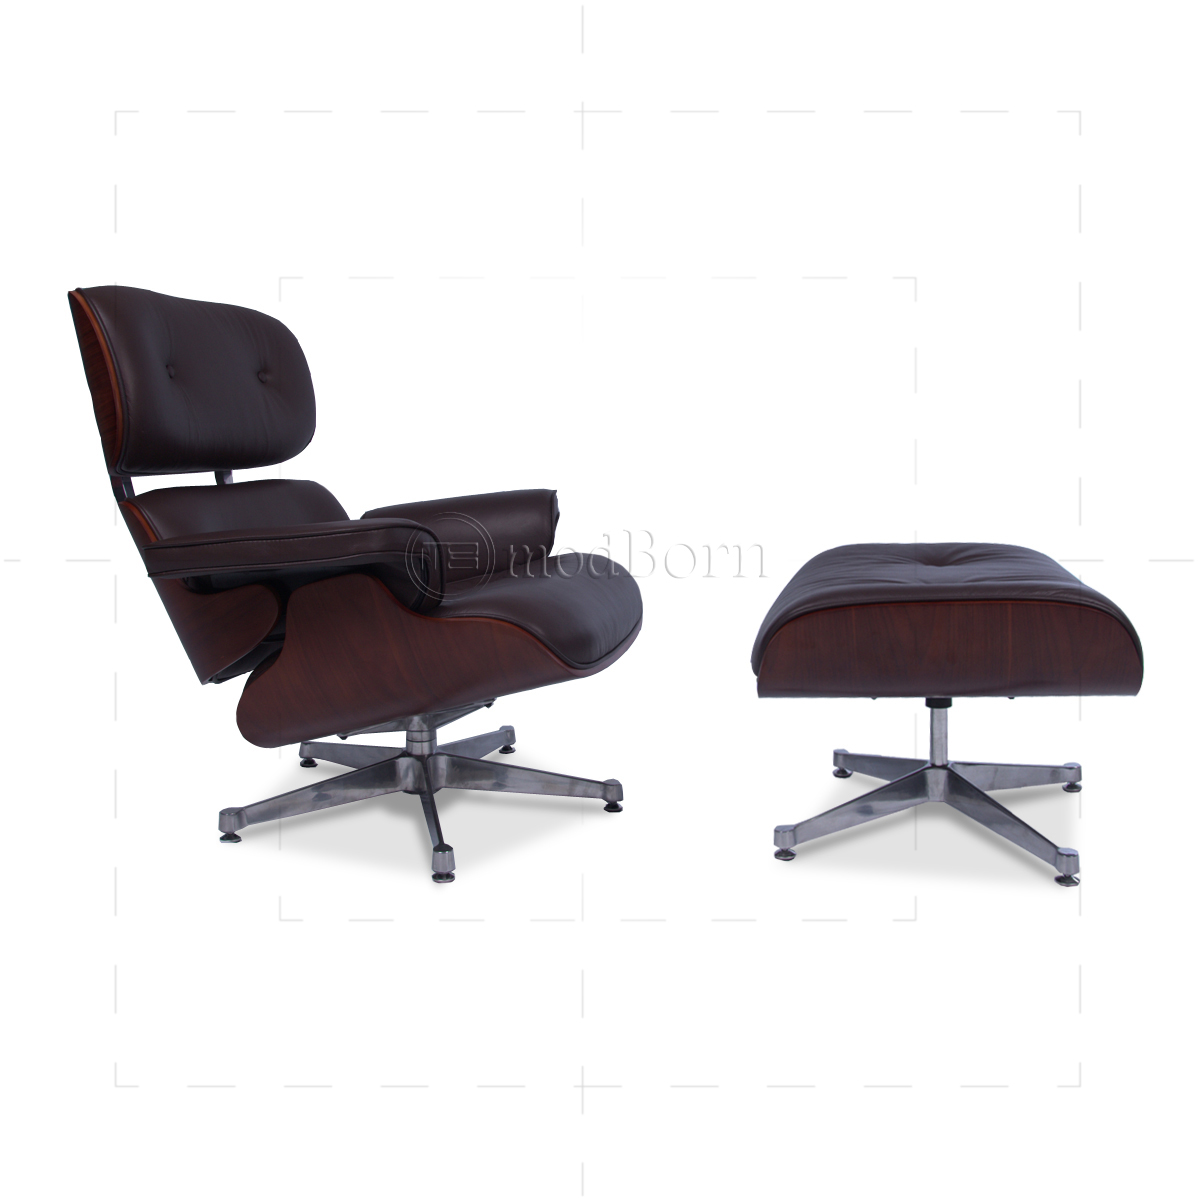 Eames Style Lounge Chair And Ottoman Brown Leather Cherry Wood